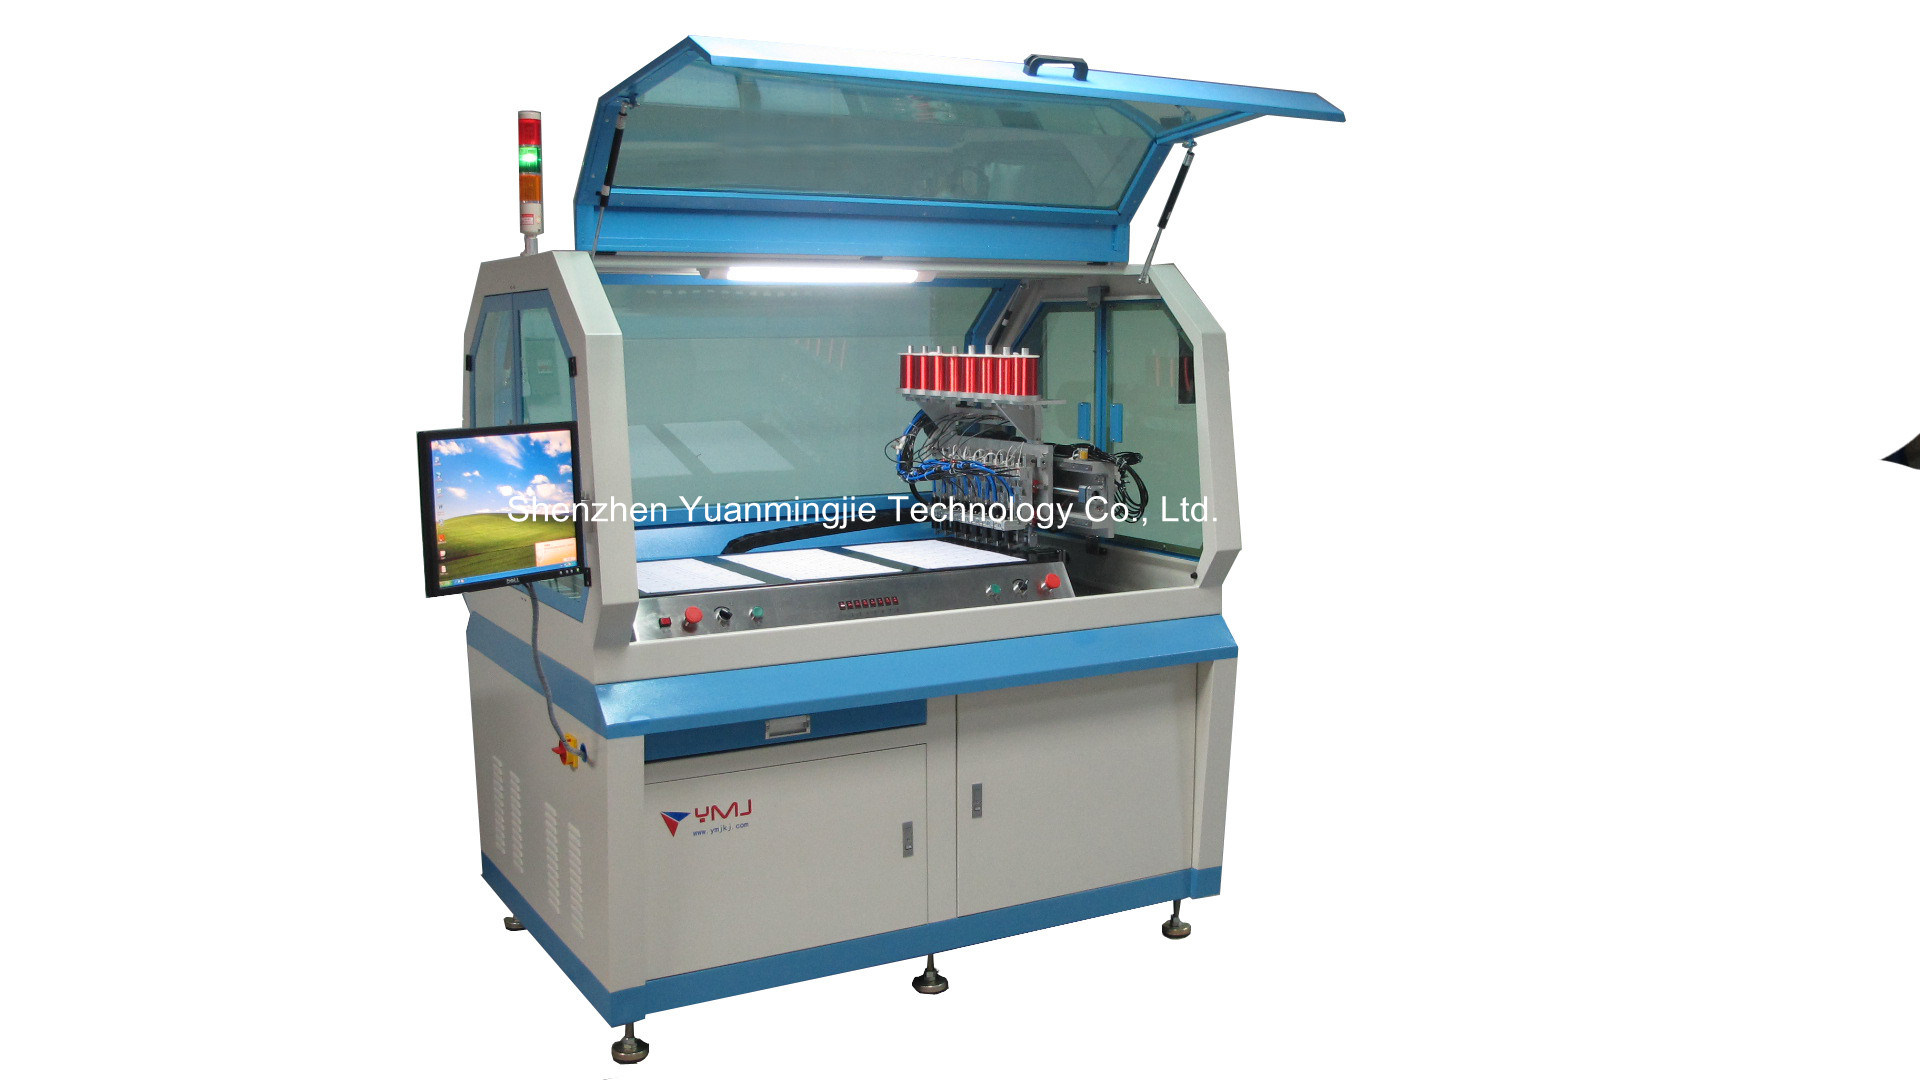 Full Auto Antenna Embedding Machine (YMJ-OL10-3000)